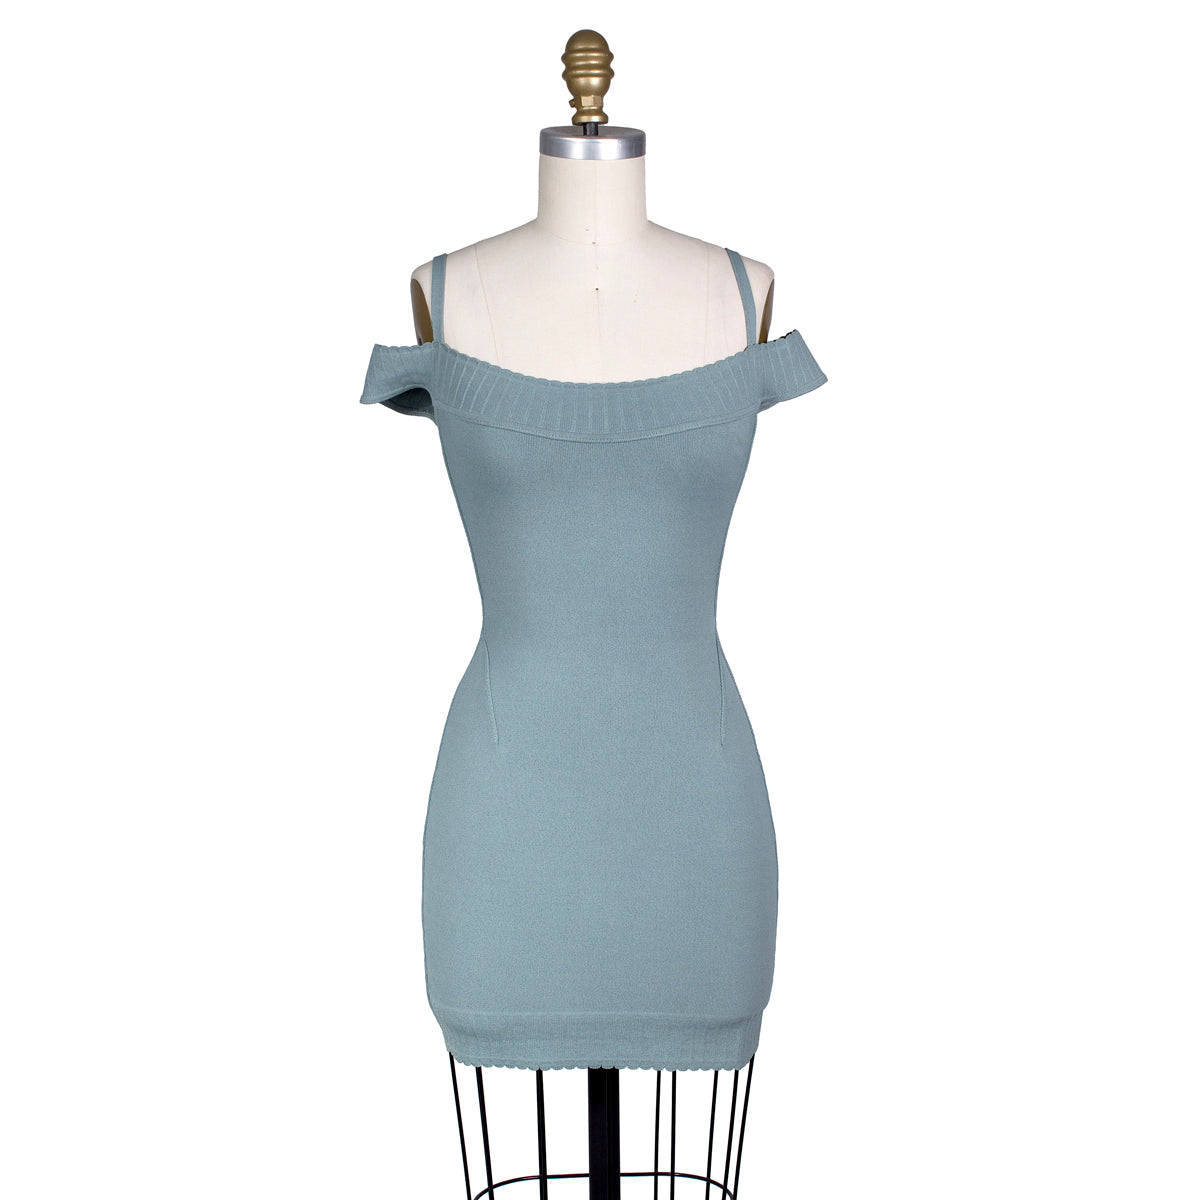 Seafoam Green Stretch Knit Bodycon Dress with Off Shoulder Straps